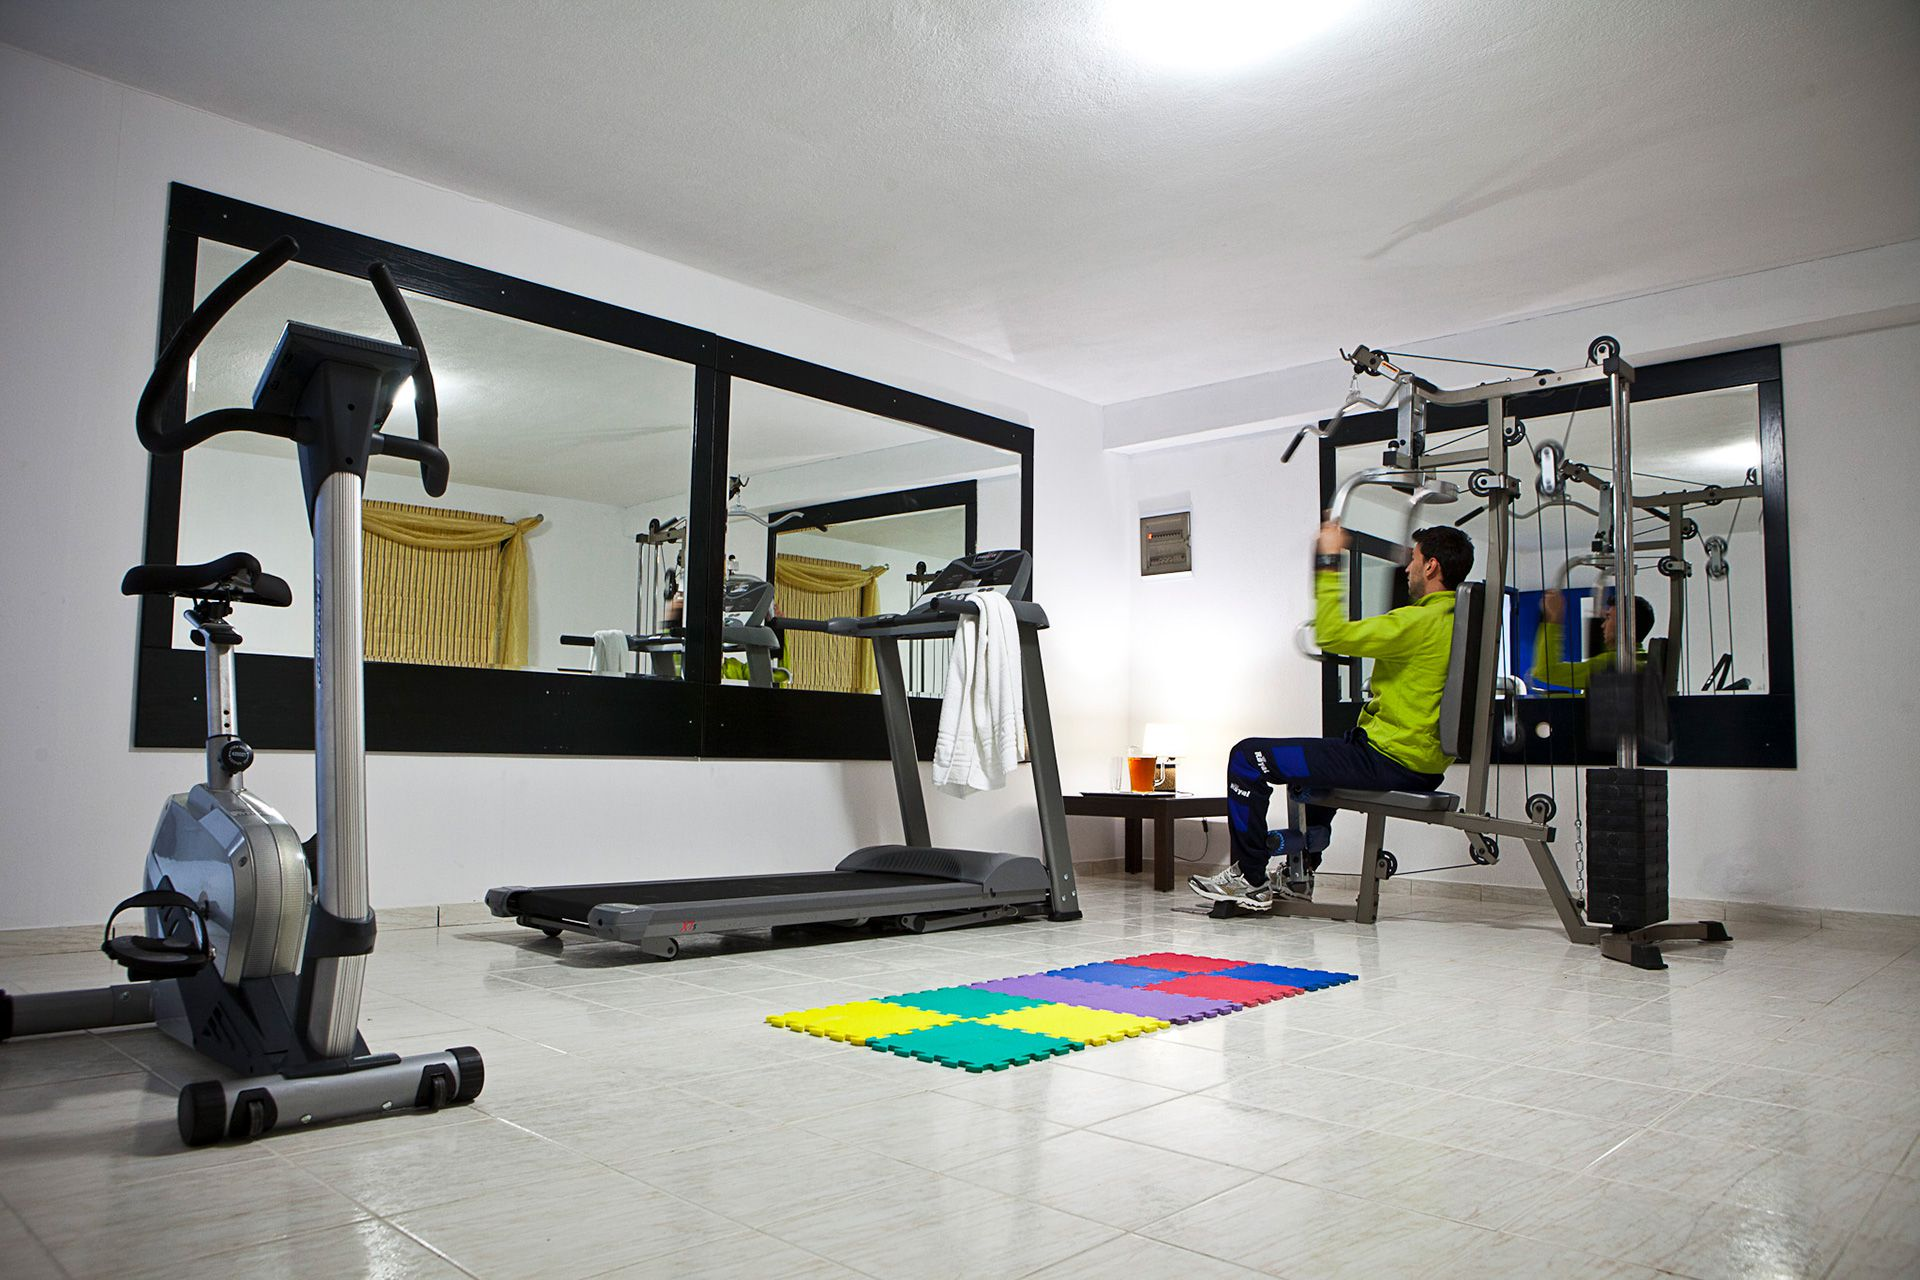 The gym area offers the ideal conditions for exercise throughout the day in a quiet and safe environment.